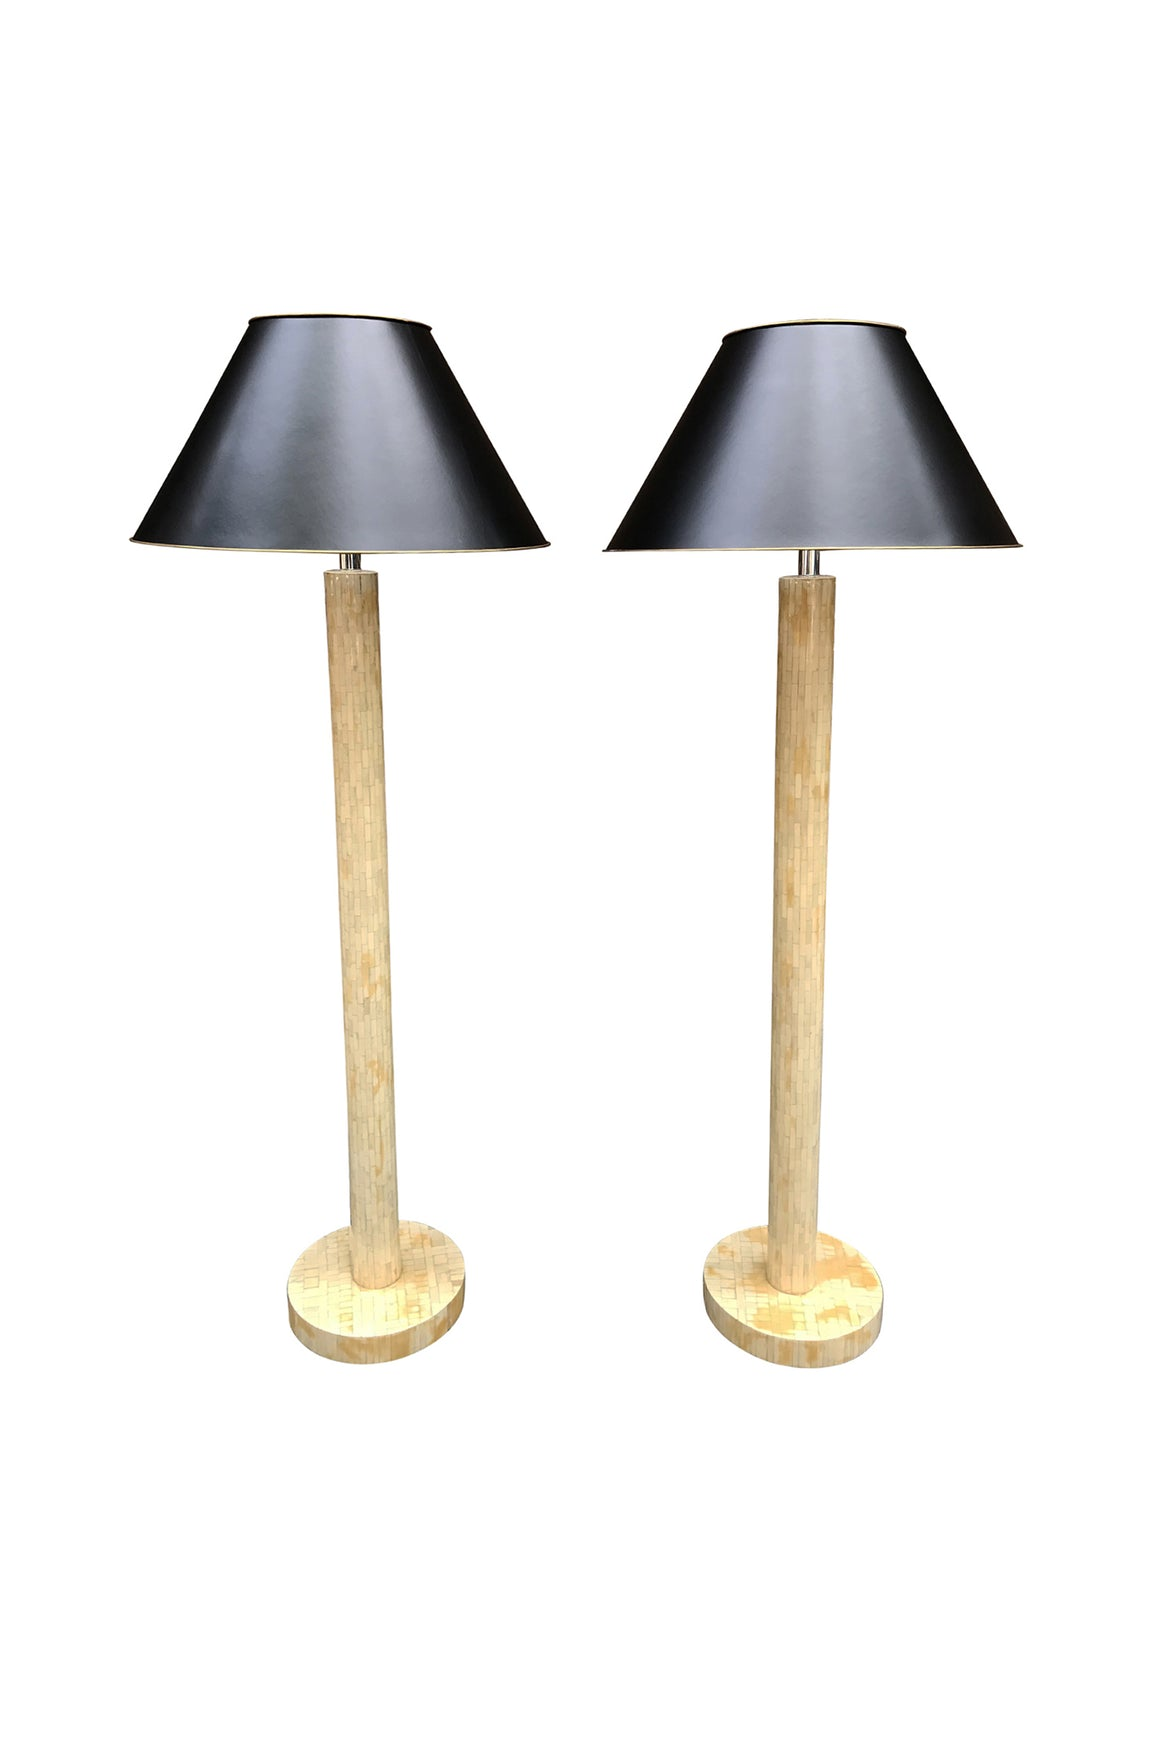 Pair of Mid-20th Century Tessellated Bone Floor Lamps